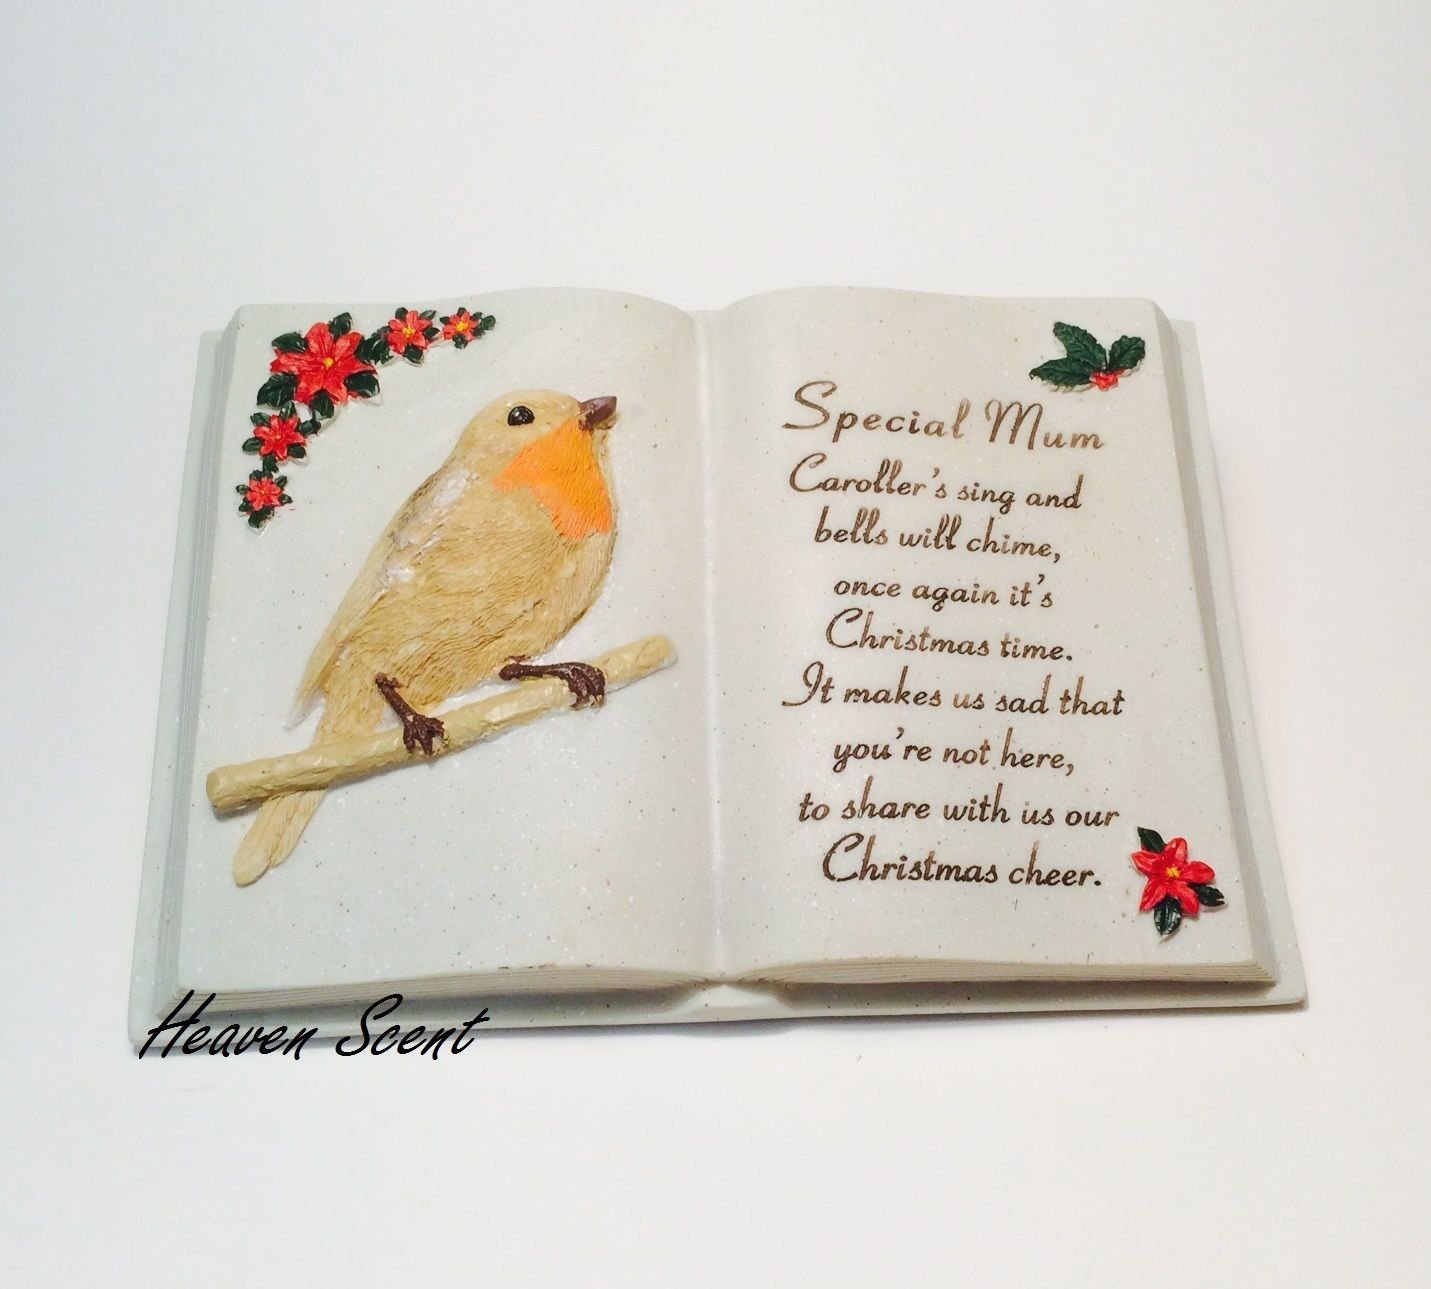 Mum Christmas Graveside Memorial ornament Book with Robin David Fischoff 13977E